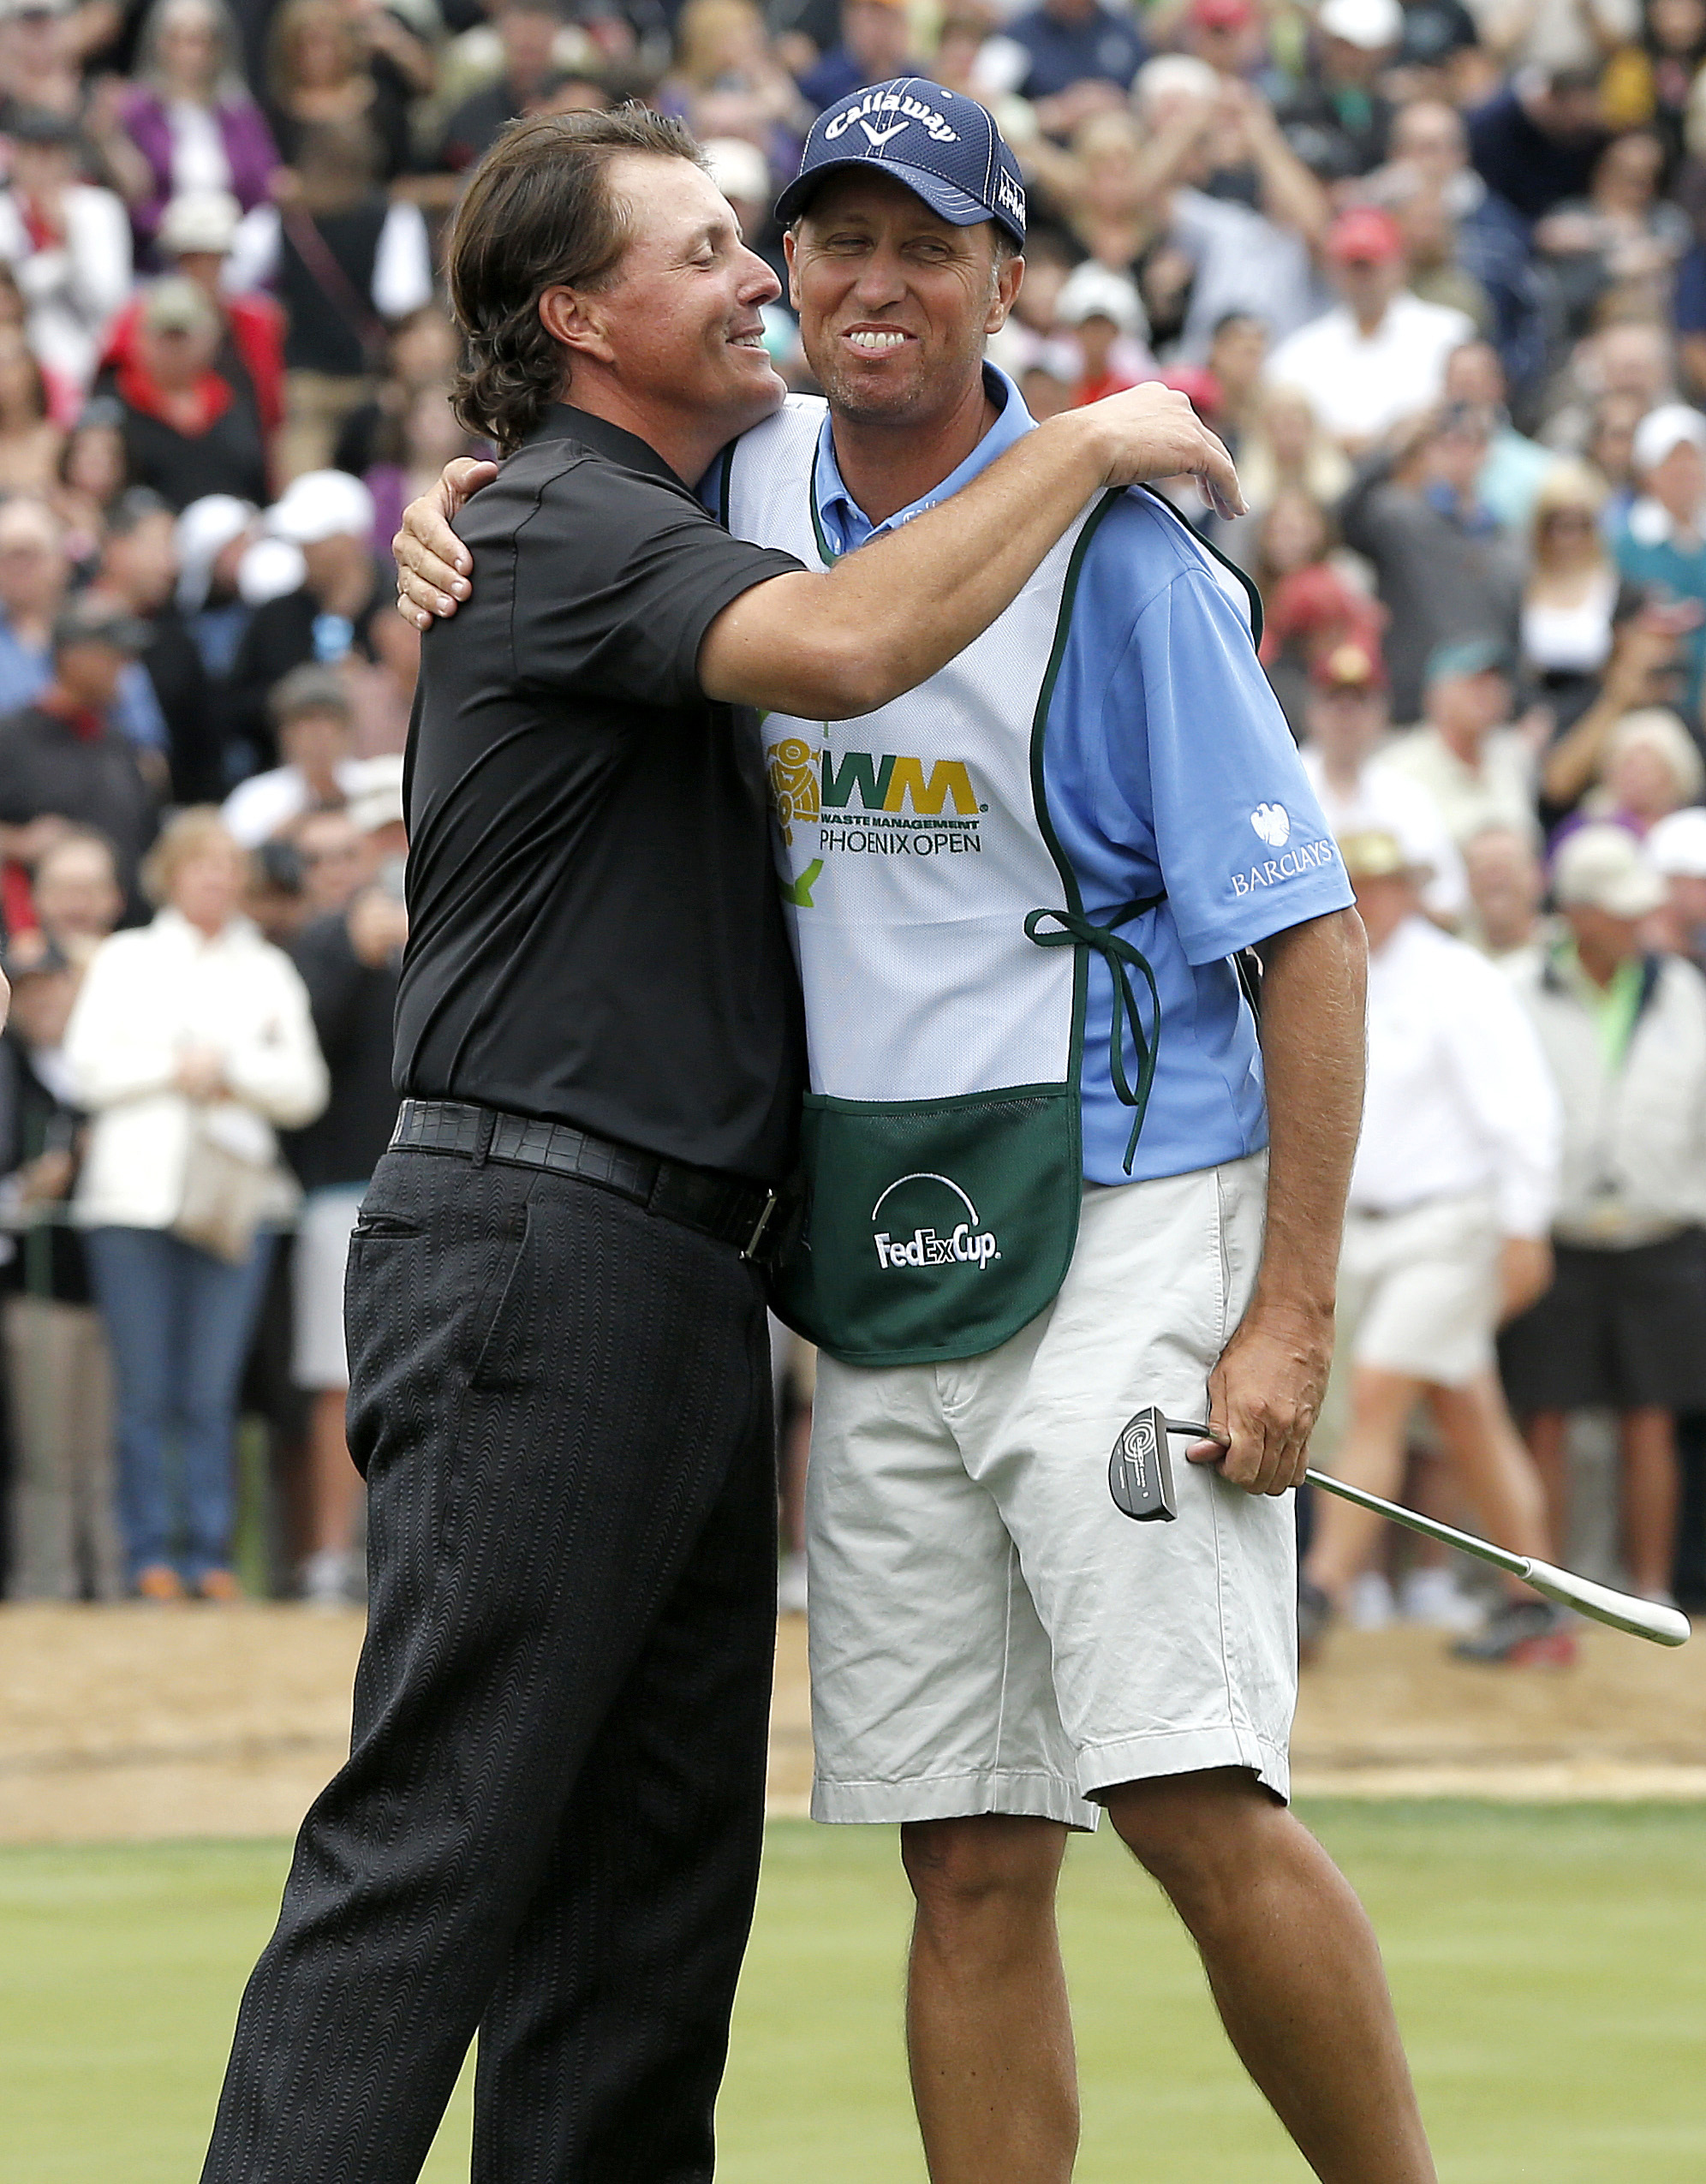 FILE - In this Feb. 3, 2013, file photo, Phil Mickelson, left, hugs his caddie, Jim Mackay, after winning the Phoenix Open golf tournament, in Scottsdale, Ariz. Mickelson and his caddie have decided to part ways after 25 years of one of the most famous pl